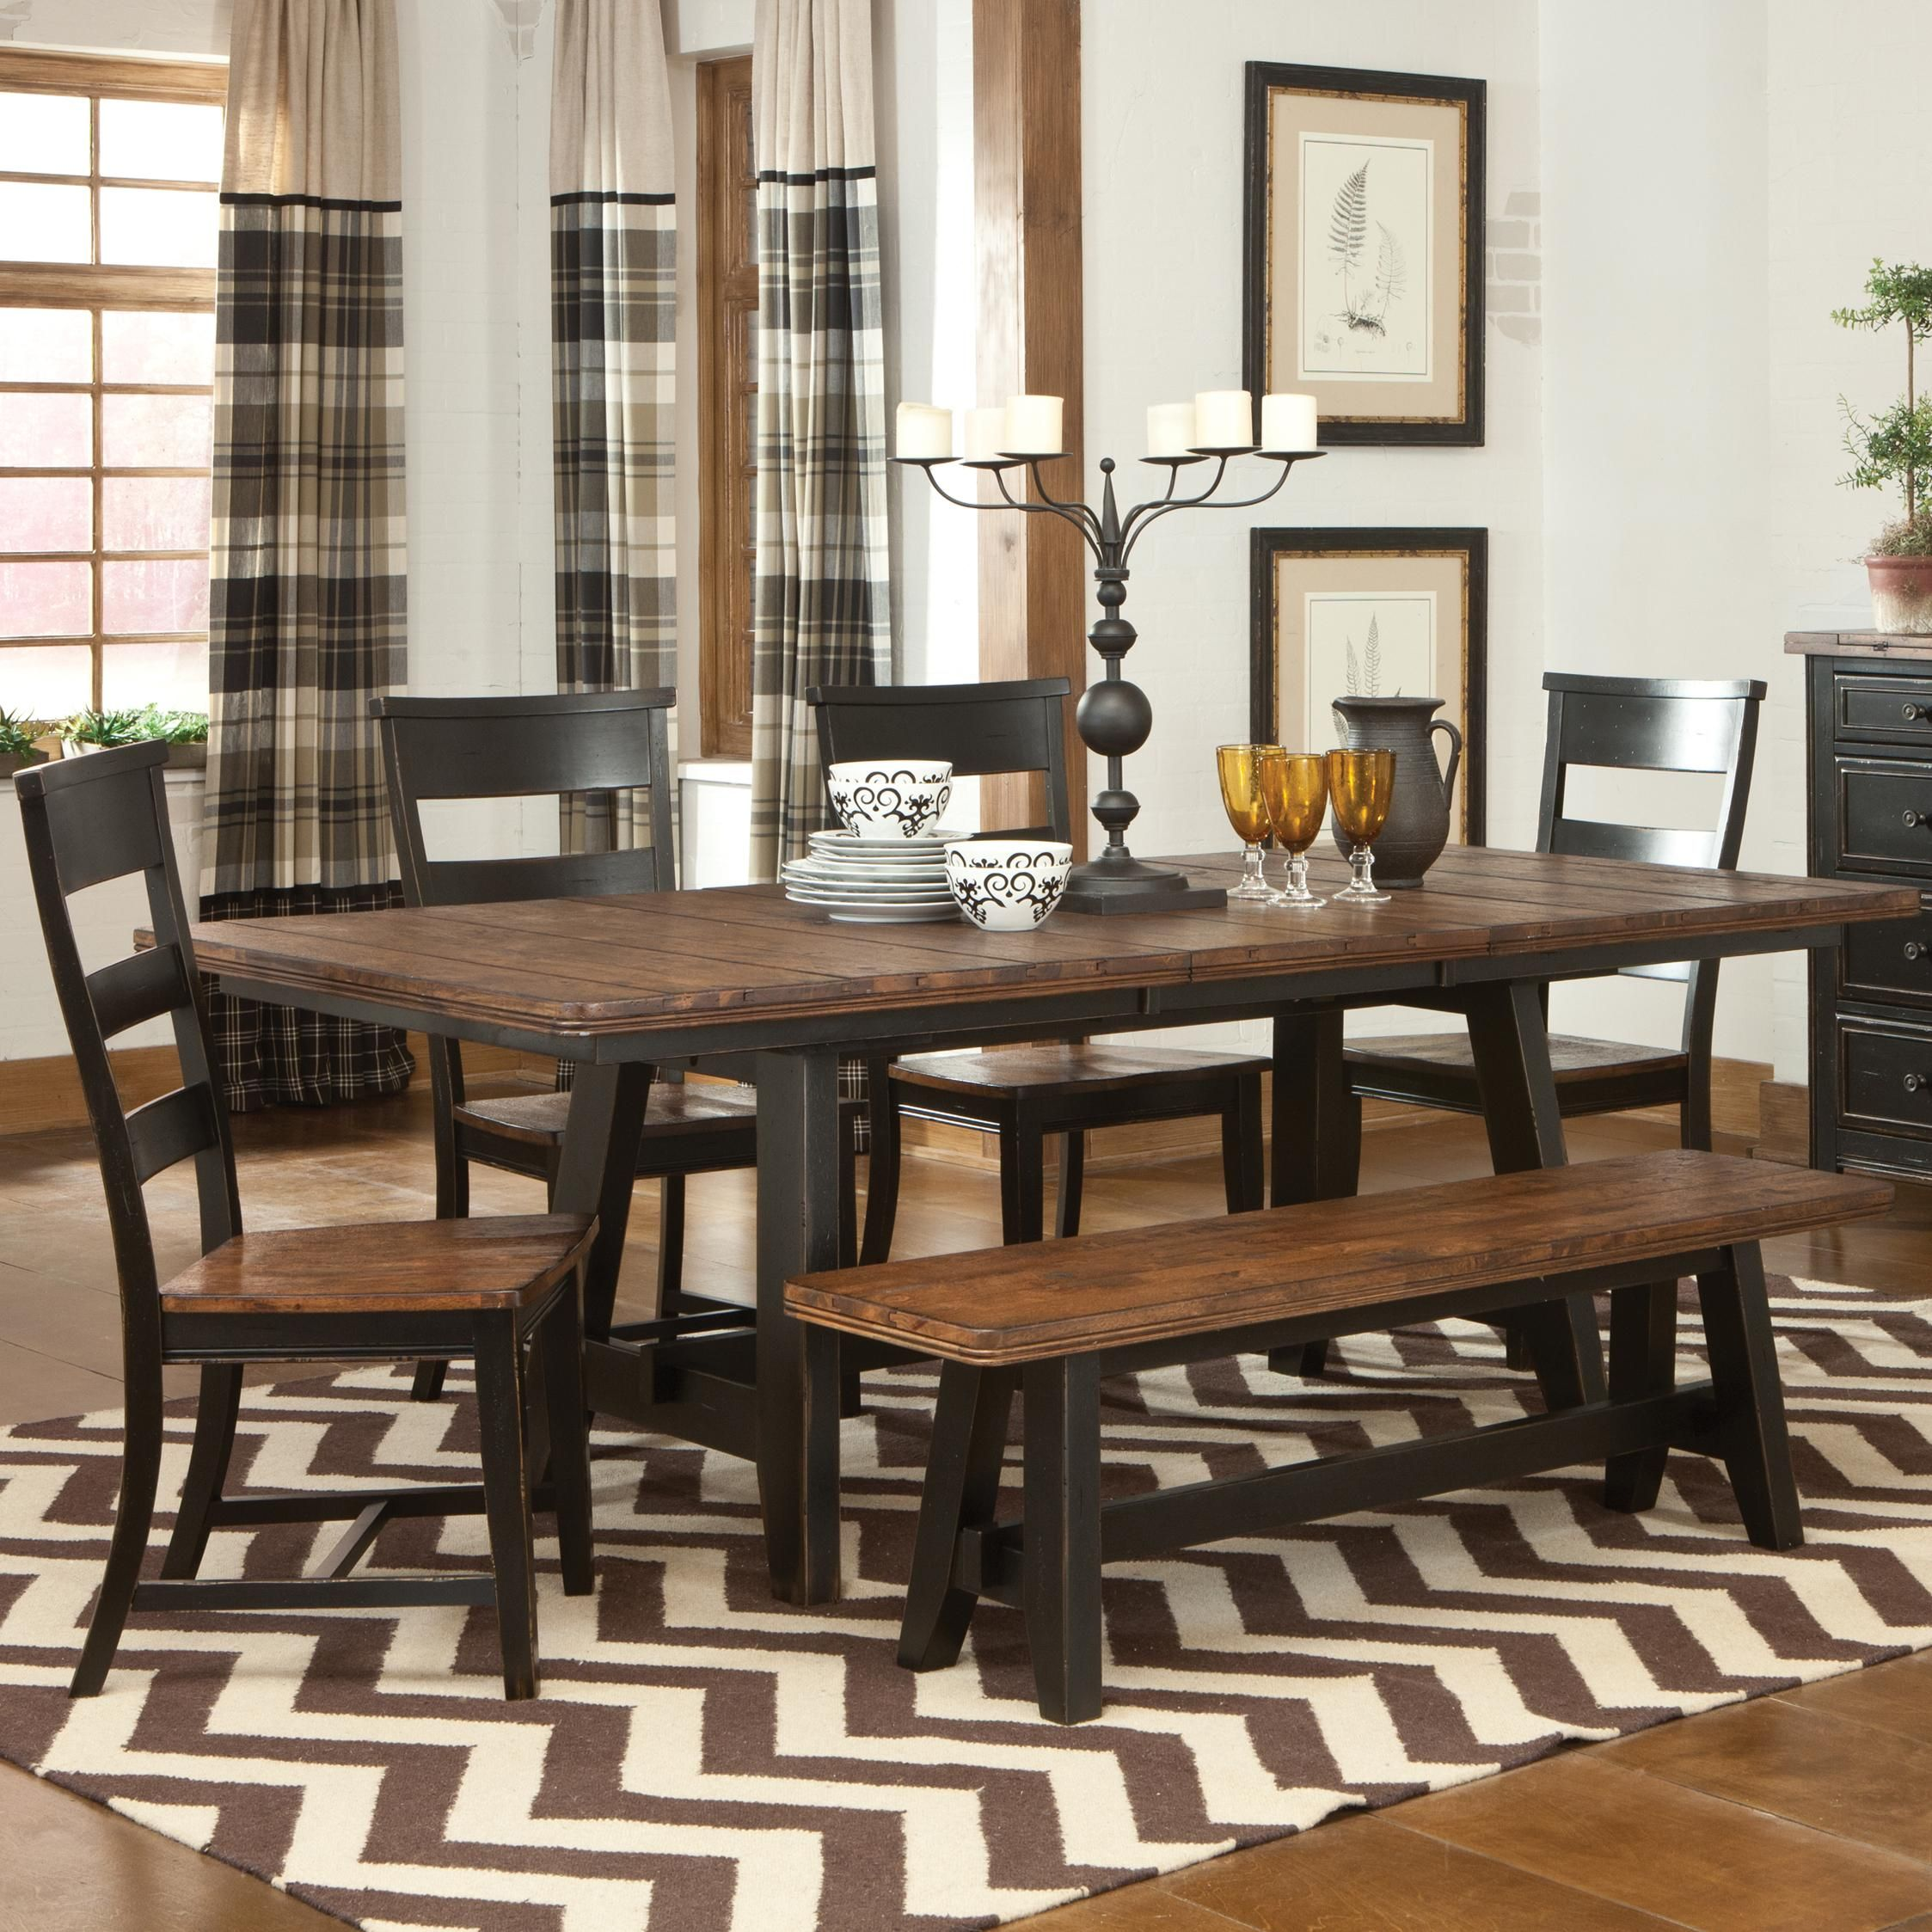 Winchester 6 Piece Trestle Table Set by Kalan Furniture